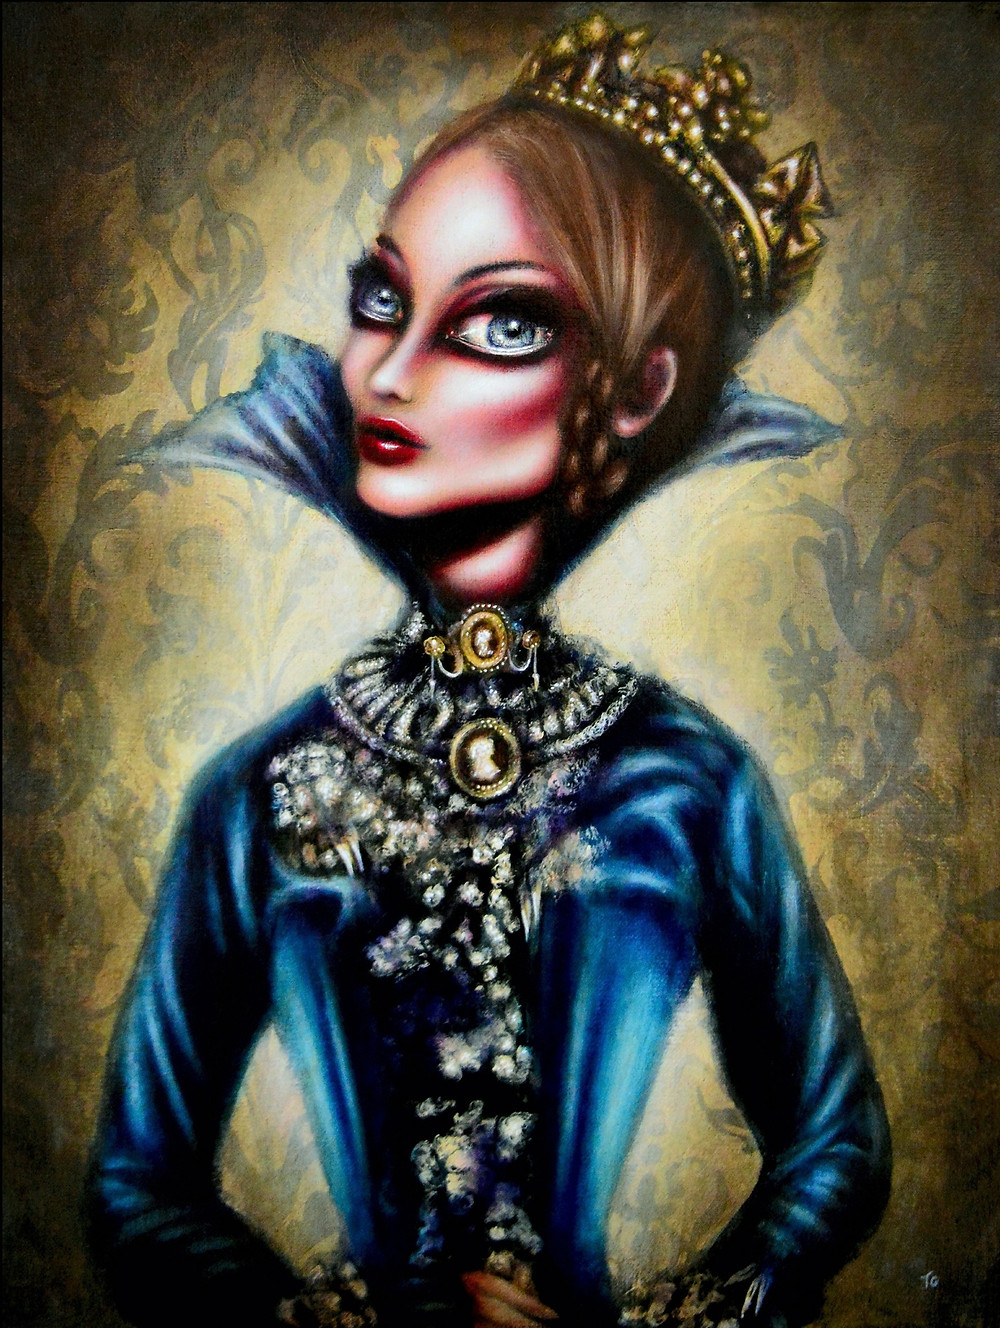 painting of queen victoria in a blue dress in a damask basckground by tiago azevedo a lowbrow pop surrealism artist